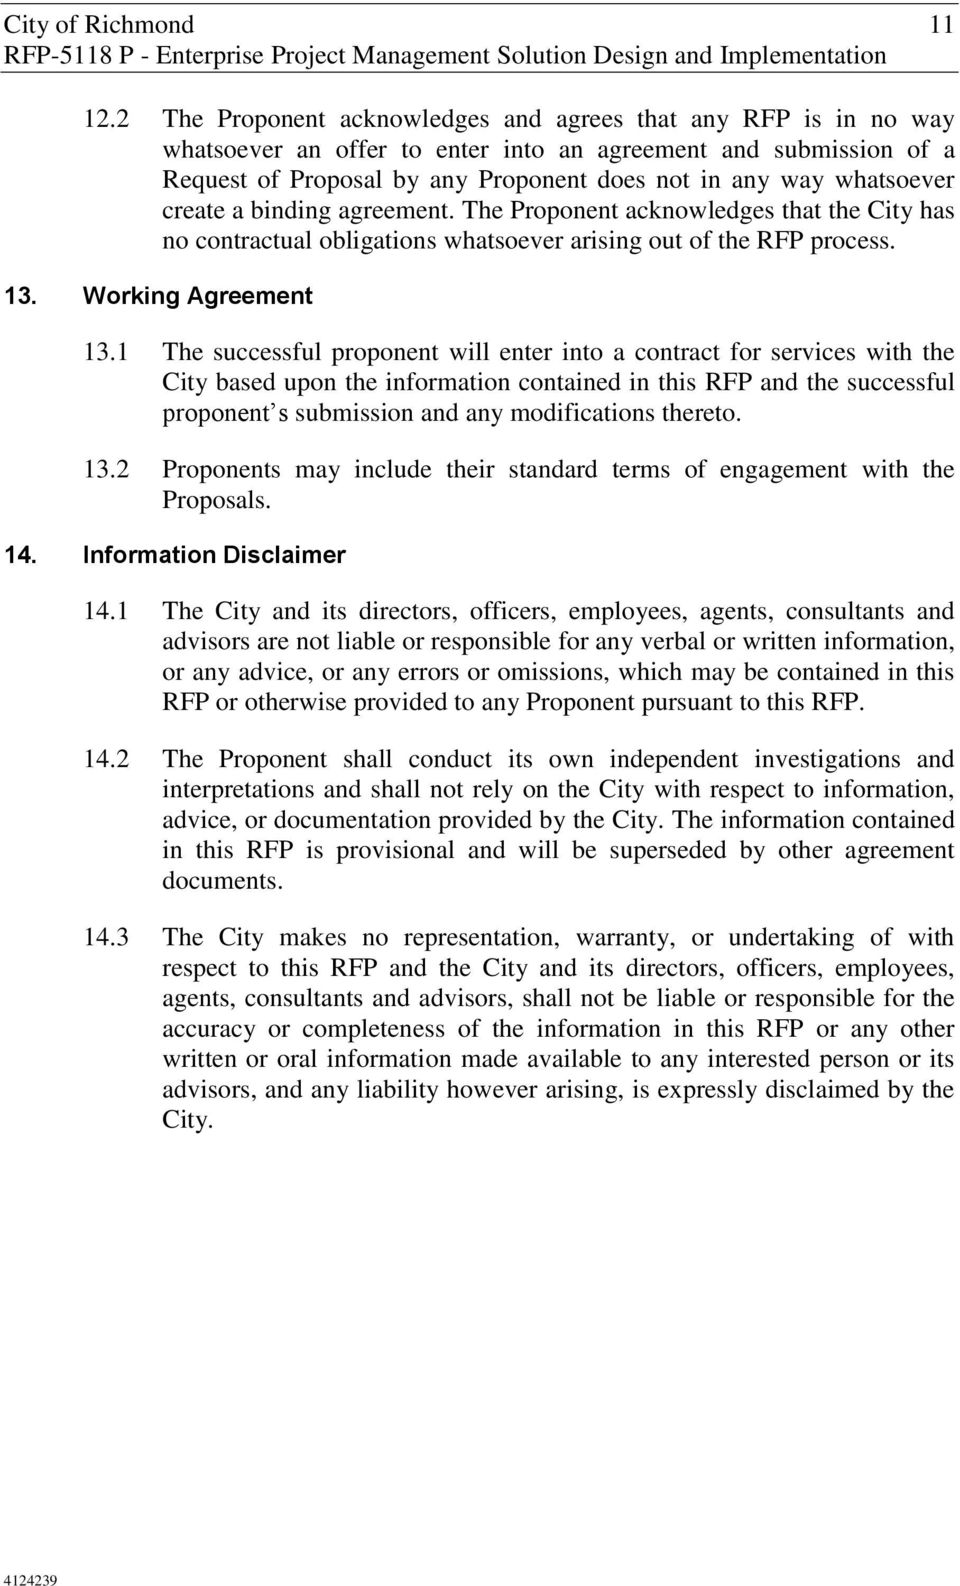 whatsoever create a binding agreement. The Proponent acknowledges that the City has no contractual obligations whatsoever arising out of the RFP process. 13. Working Agreement 13.